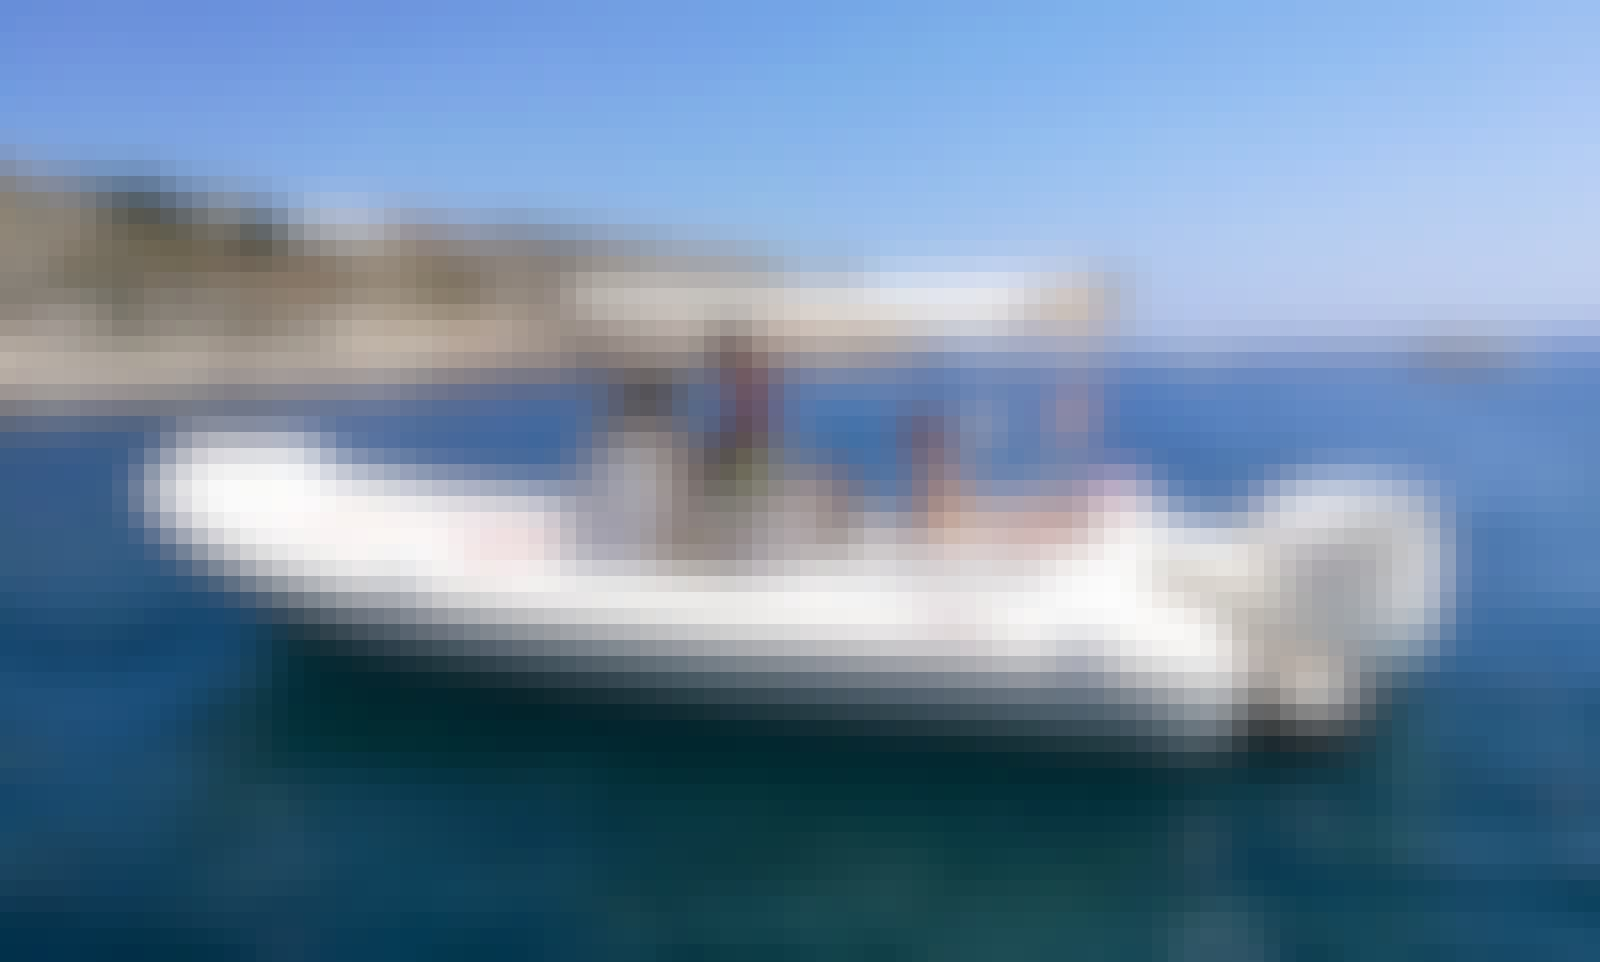 23' Nuova Jolly with 250 hp Outboard - Explore Hvar, Pakleni islands, Vis, Blue and Green Cave and many more!